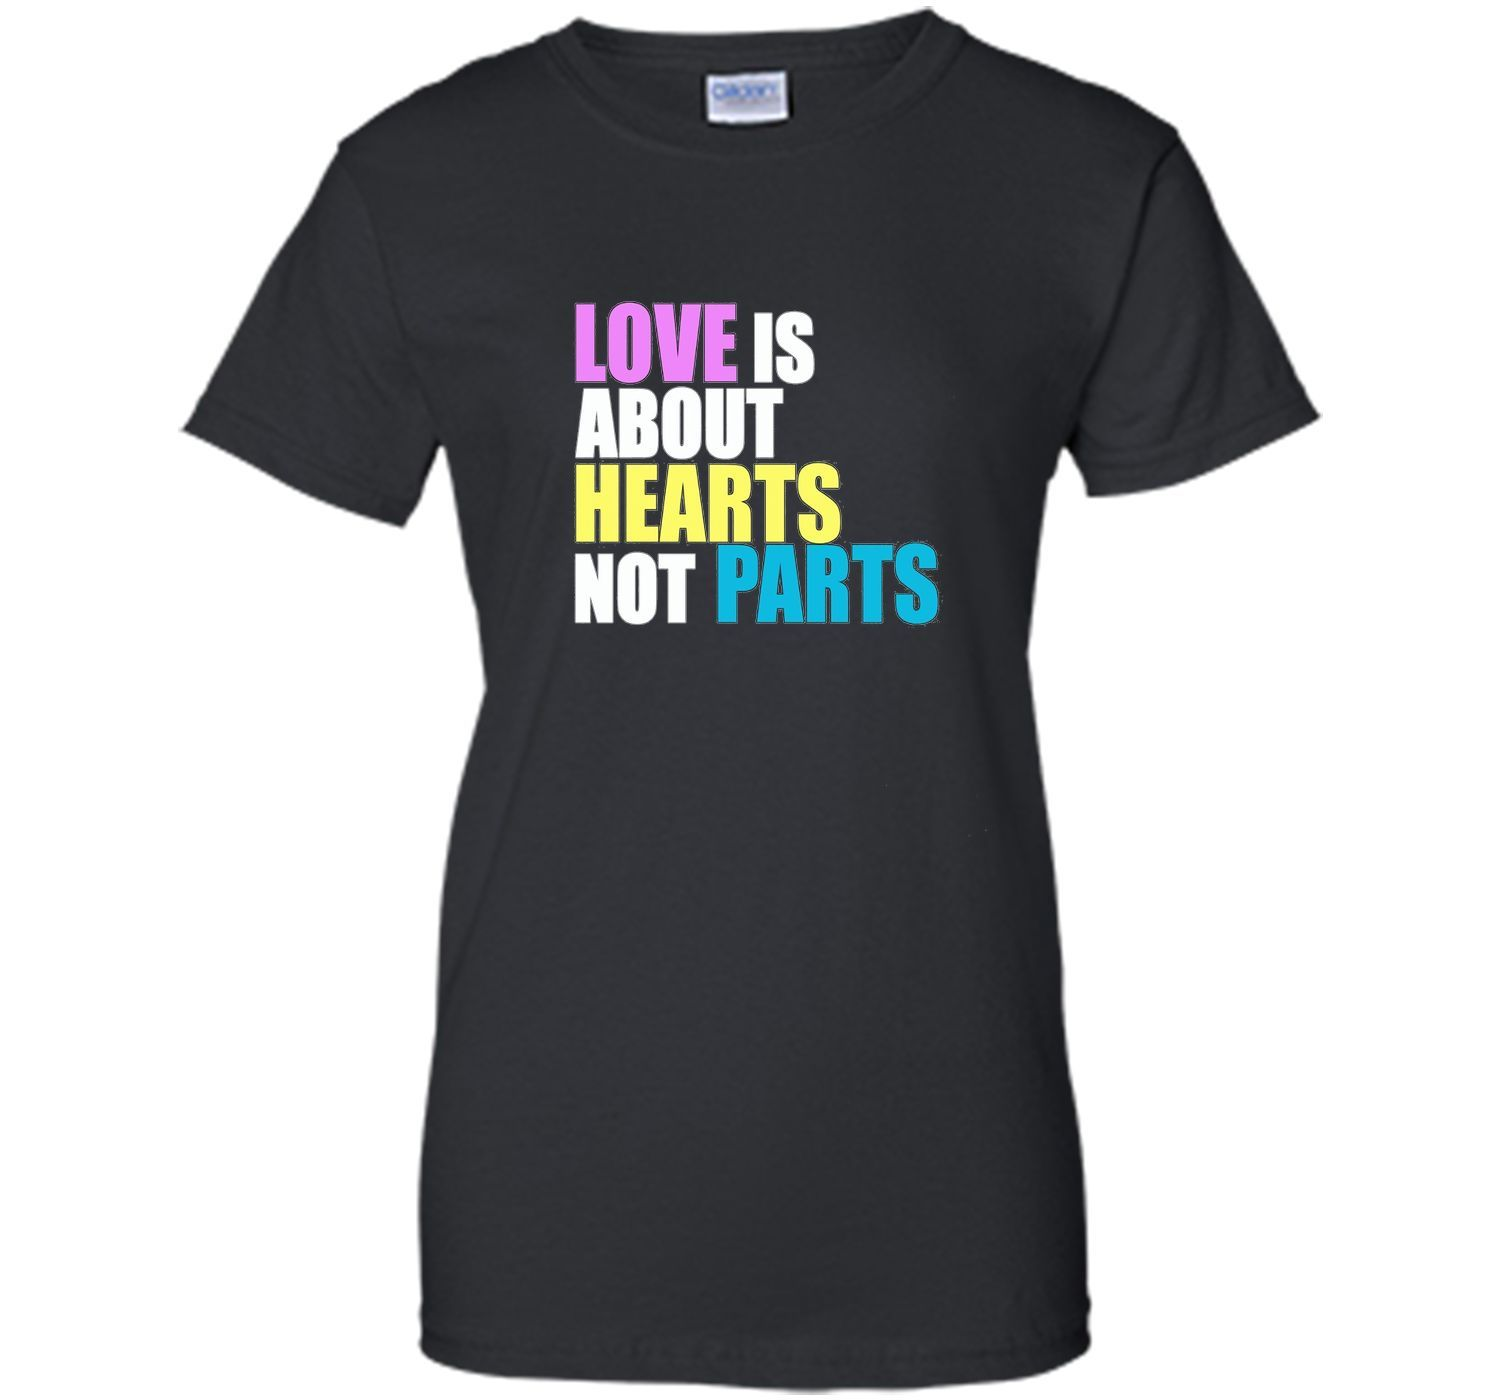 Love is about Hearts Not Parts, LGBT Pride Equality T-Shirt